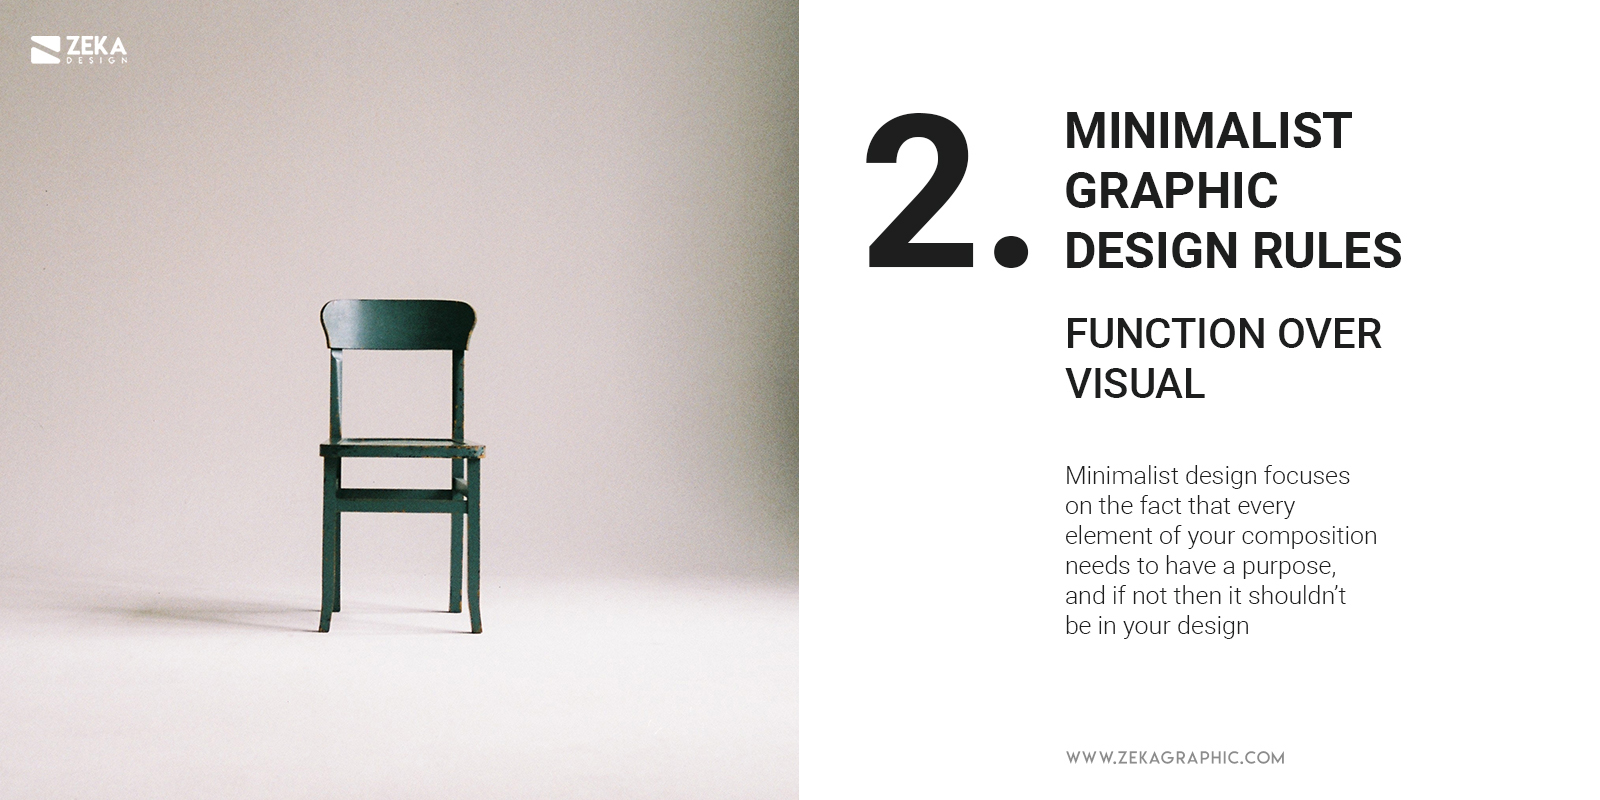 2 Minimalist Graphic Design Rules Function over Visual